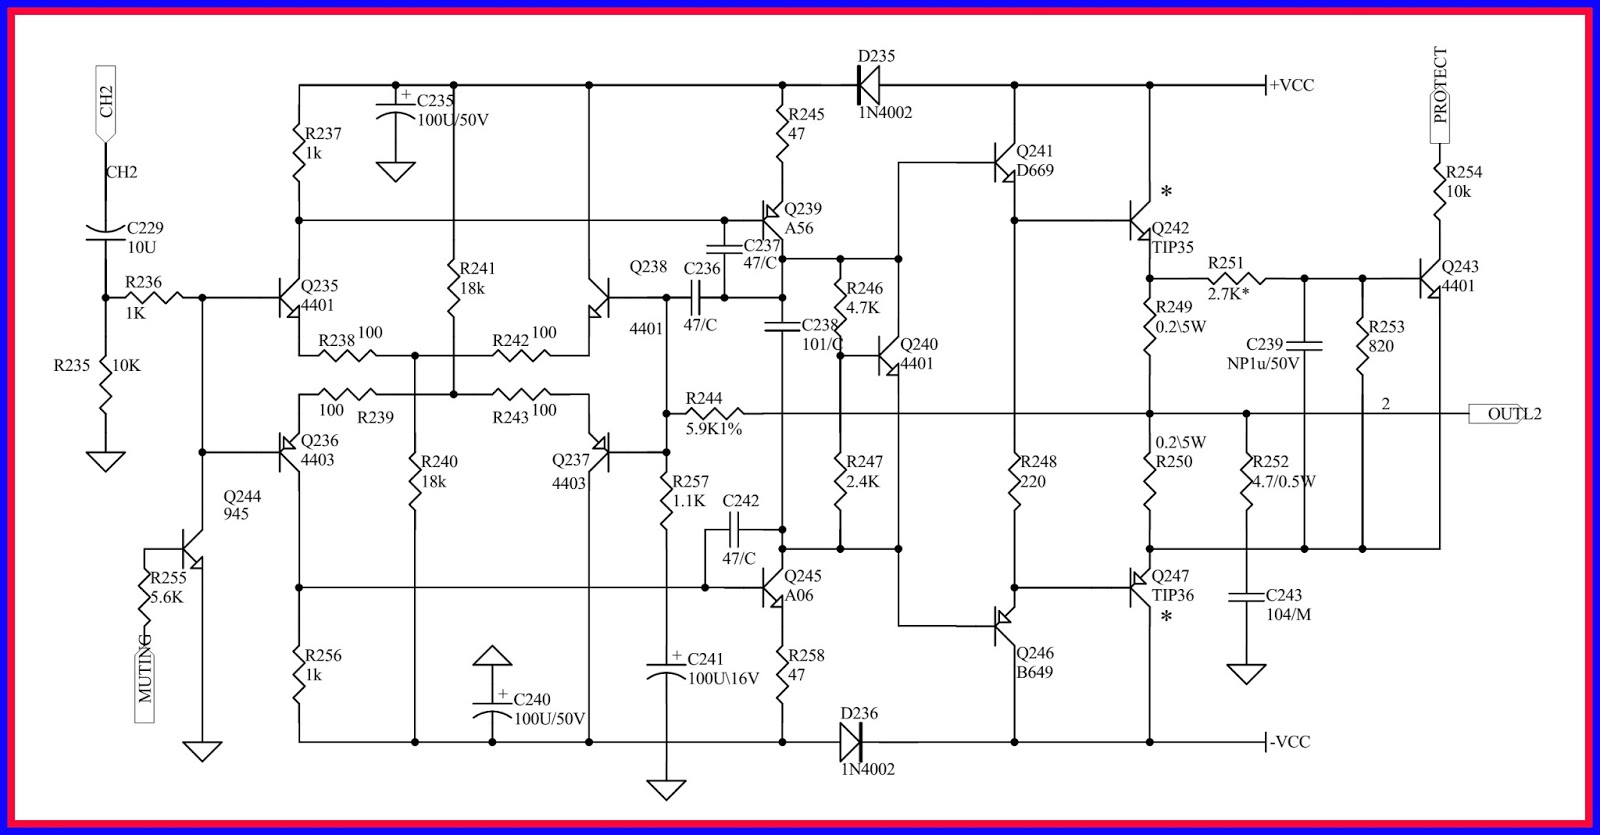 Jbl Amplifier Circuit Diagram - Car Wiring Diagrams Explained •